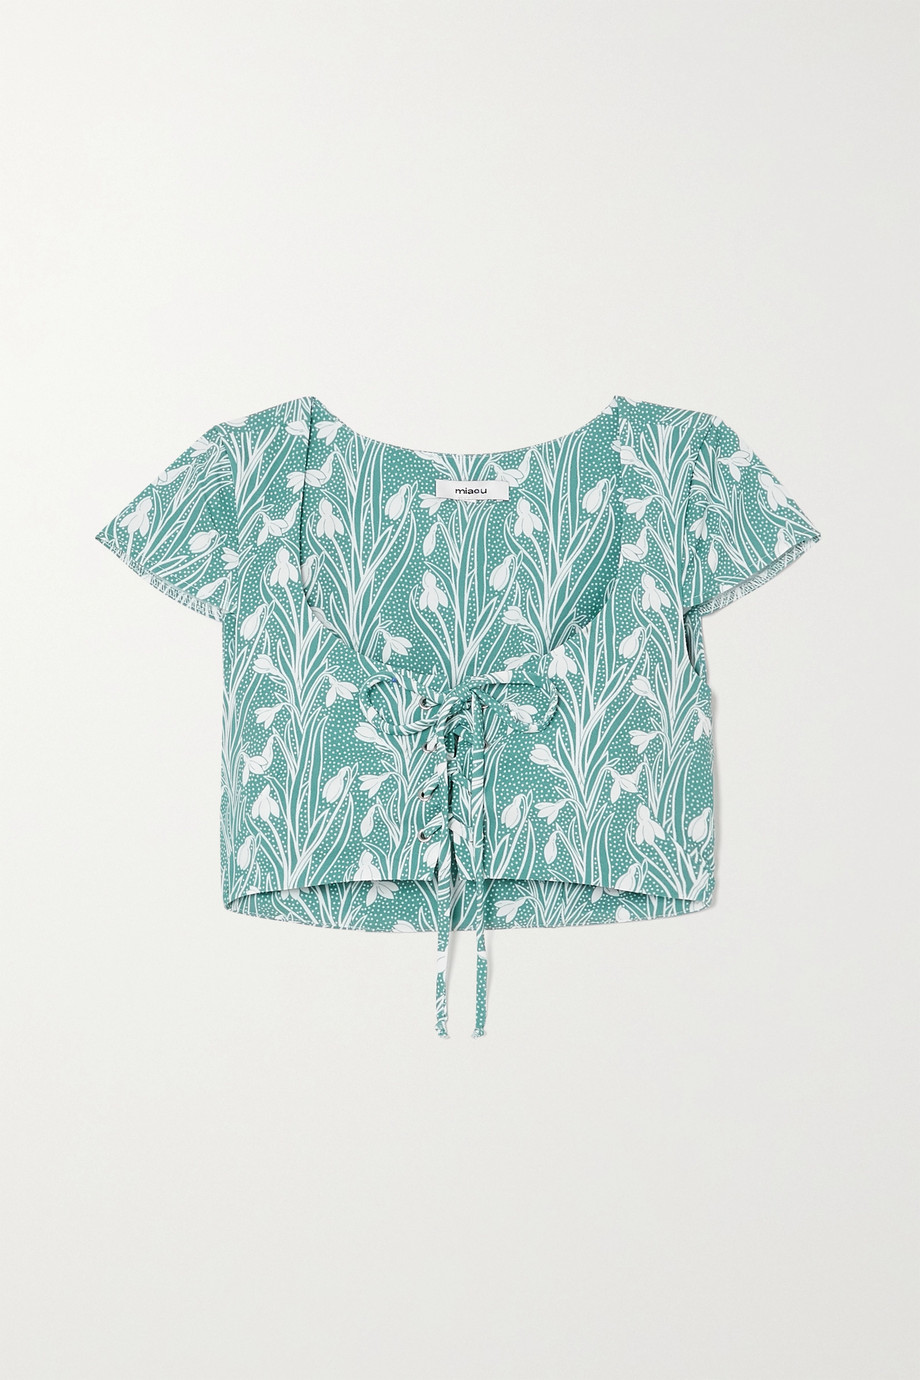 Miaou + NET SUSTAIN Arielle cropped lace-up floral-print stretch-crepe top